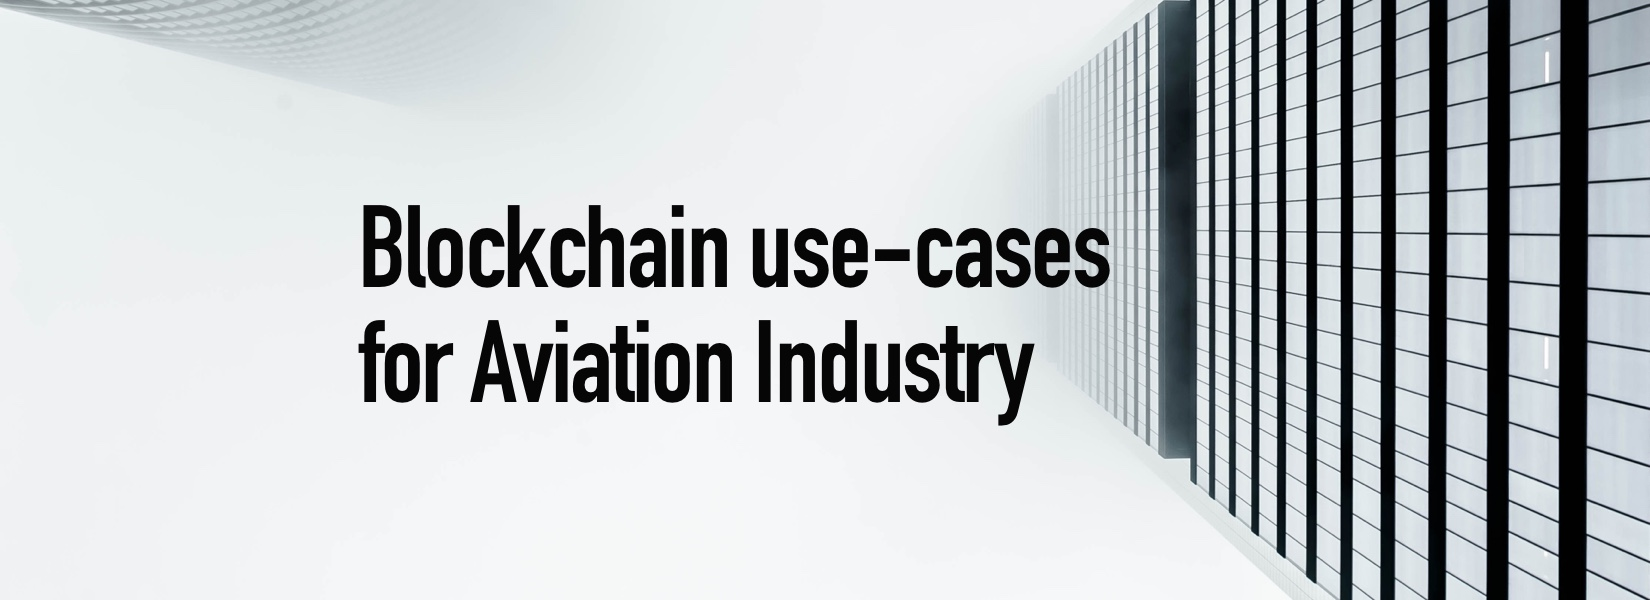 Blockchain use-cases for Aviation Industry in 2018